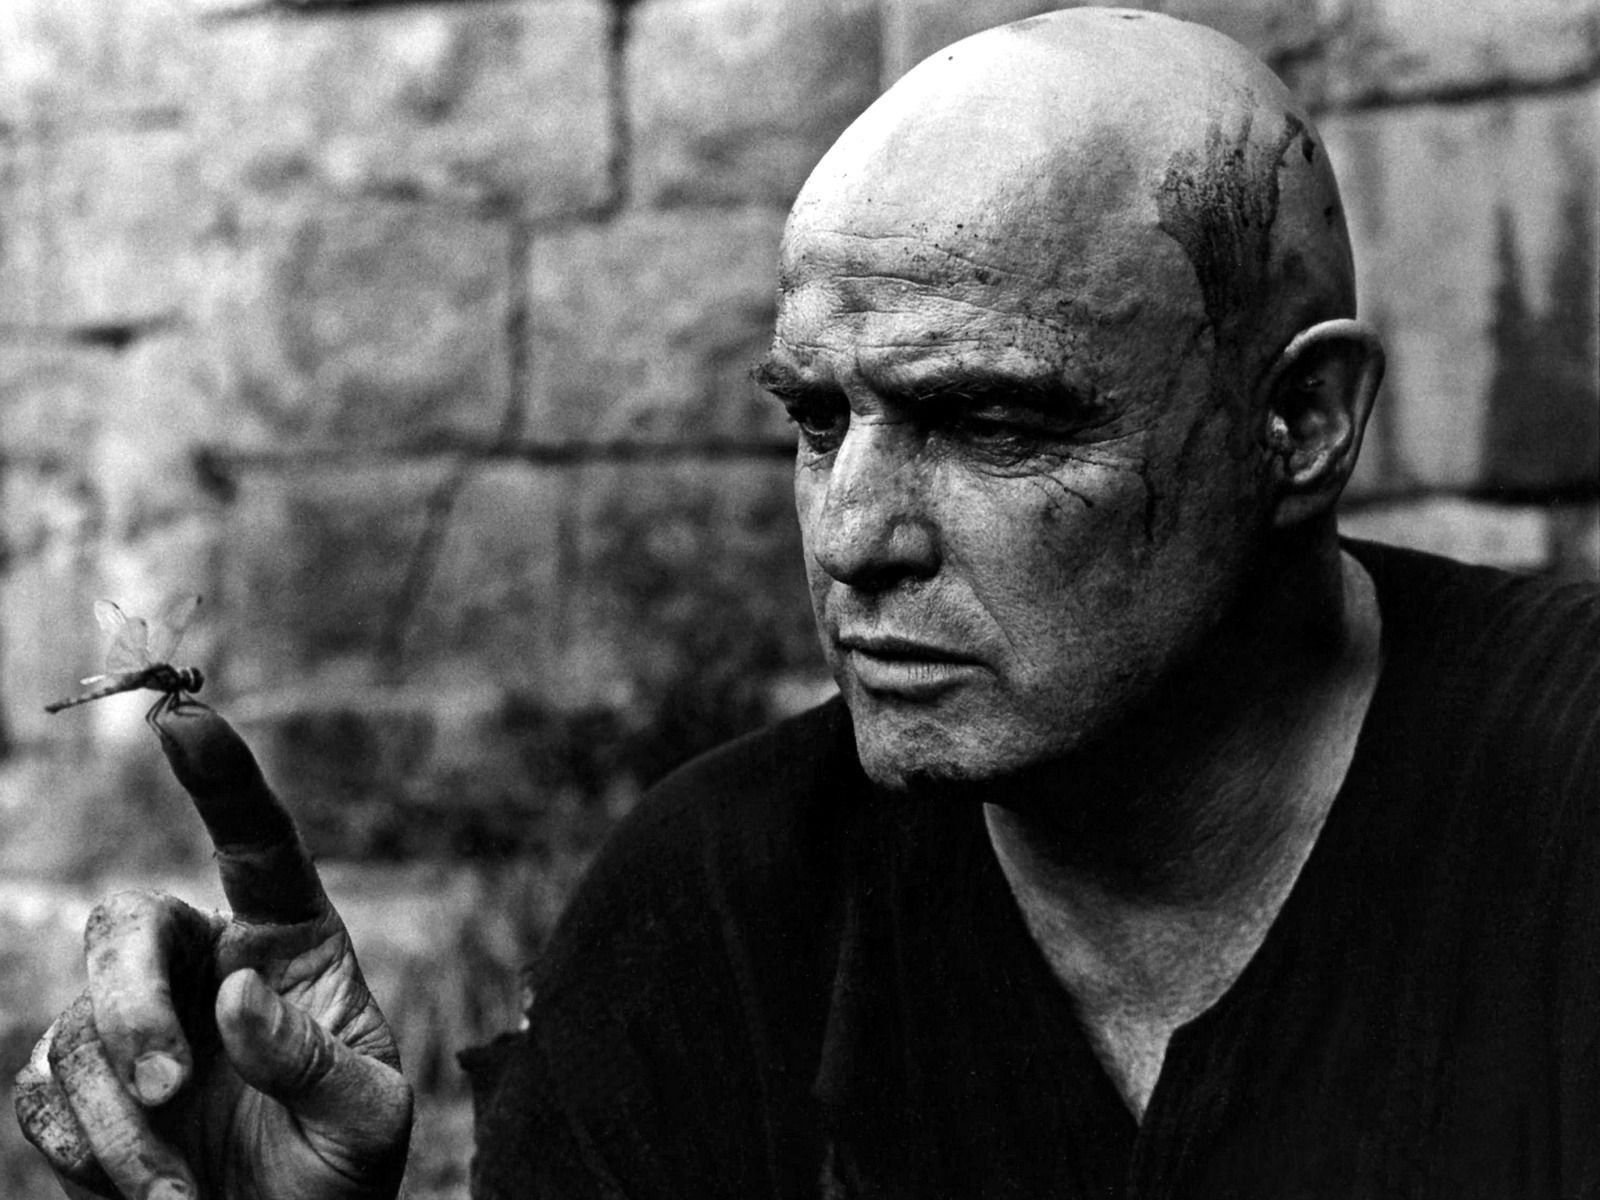 Image result for Apocalypse Now. The character of Colonel Kurtz dragonfly